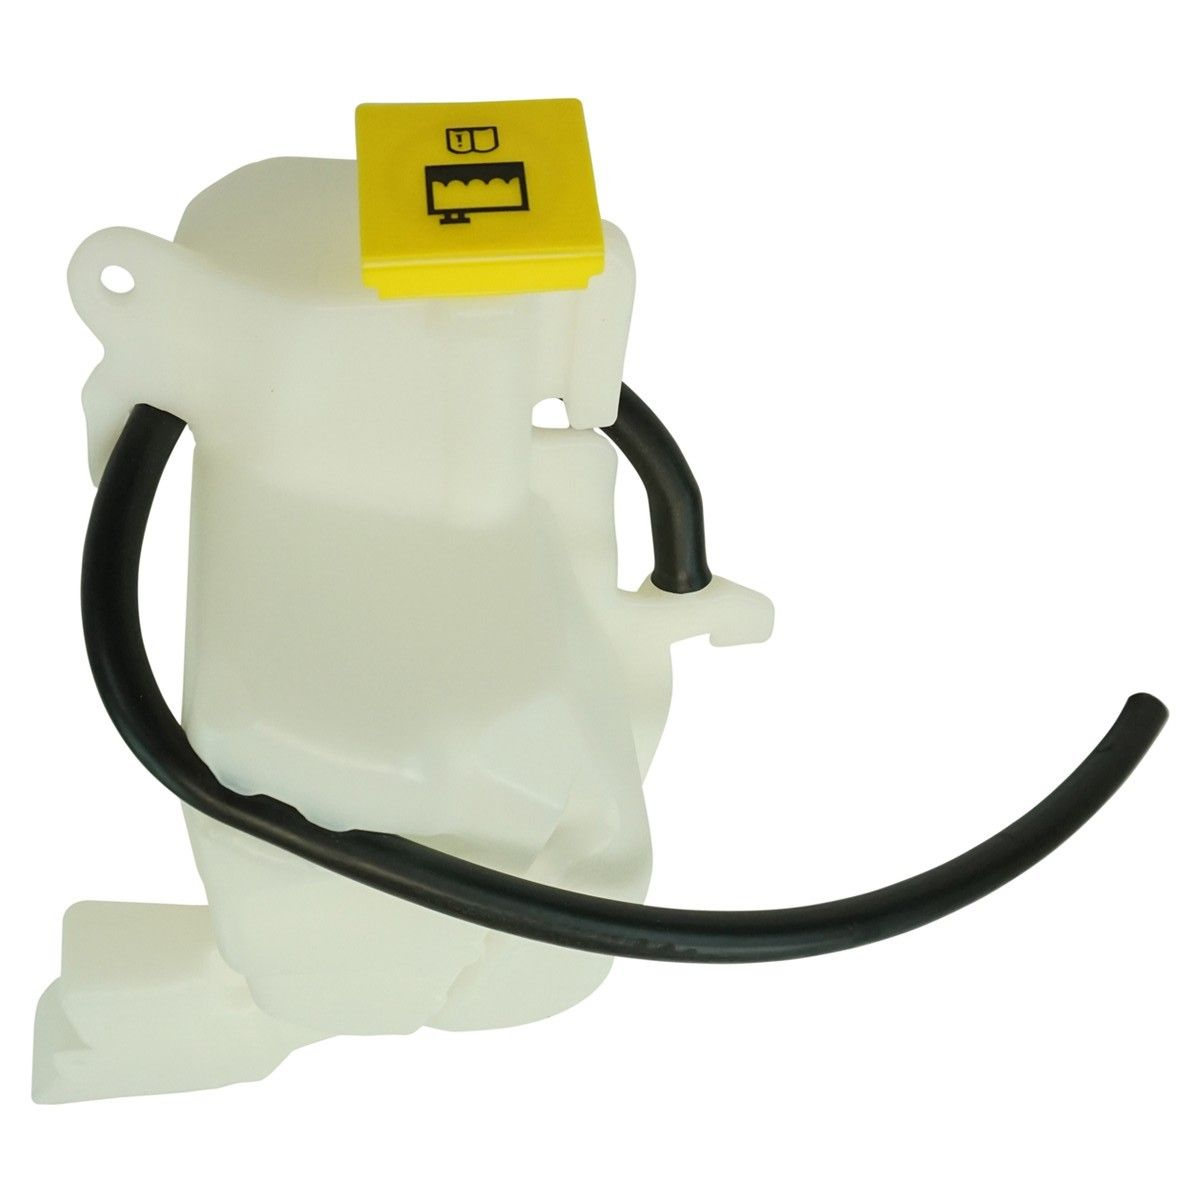 Coolant Recovery Kits Coolant Reservoir For 2010 Dodge Ram 2500 ...